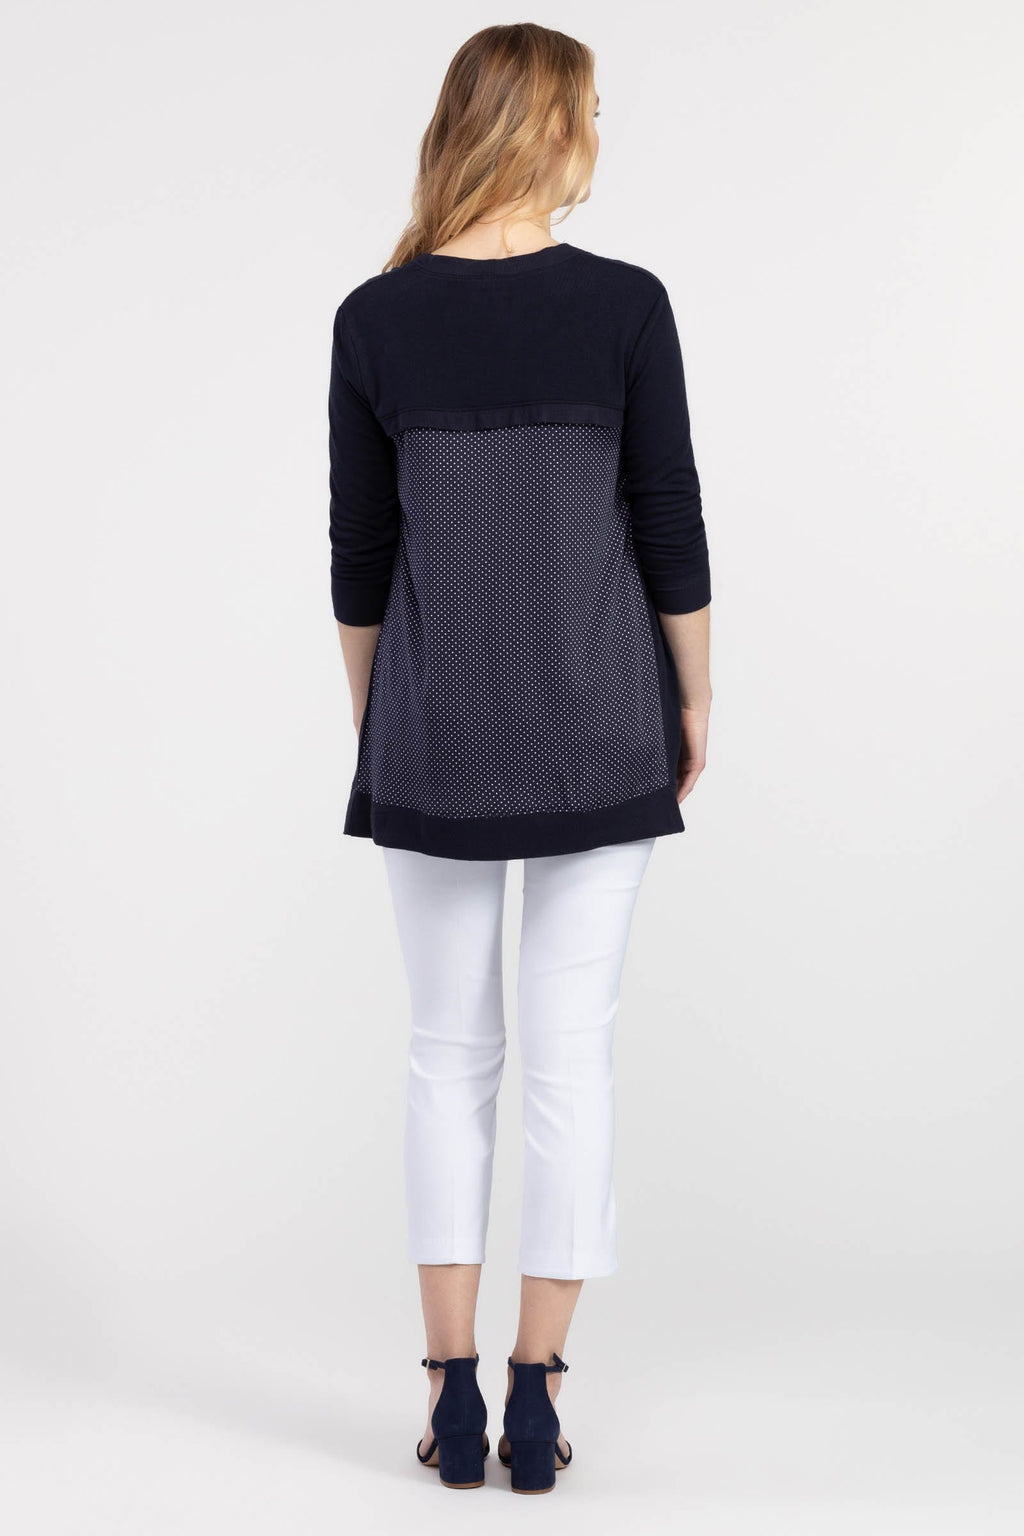 Women's 3/4 Sleeve Knit Cardigan